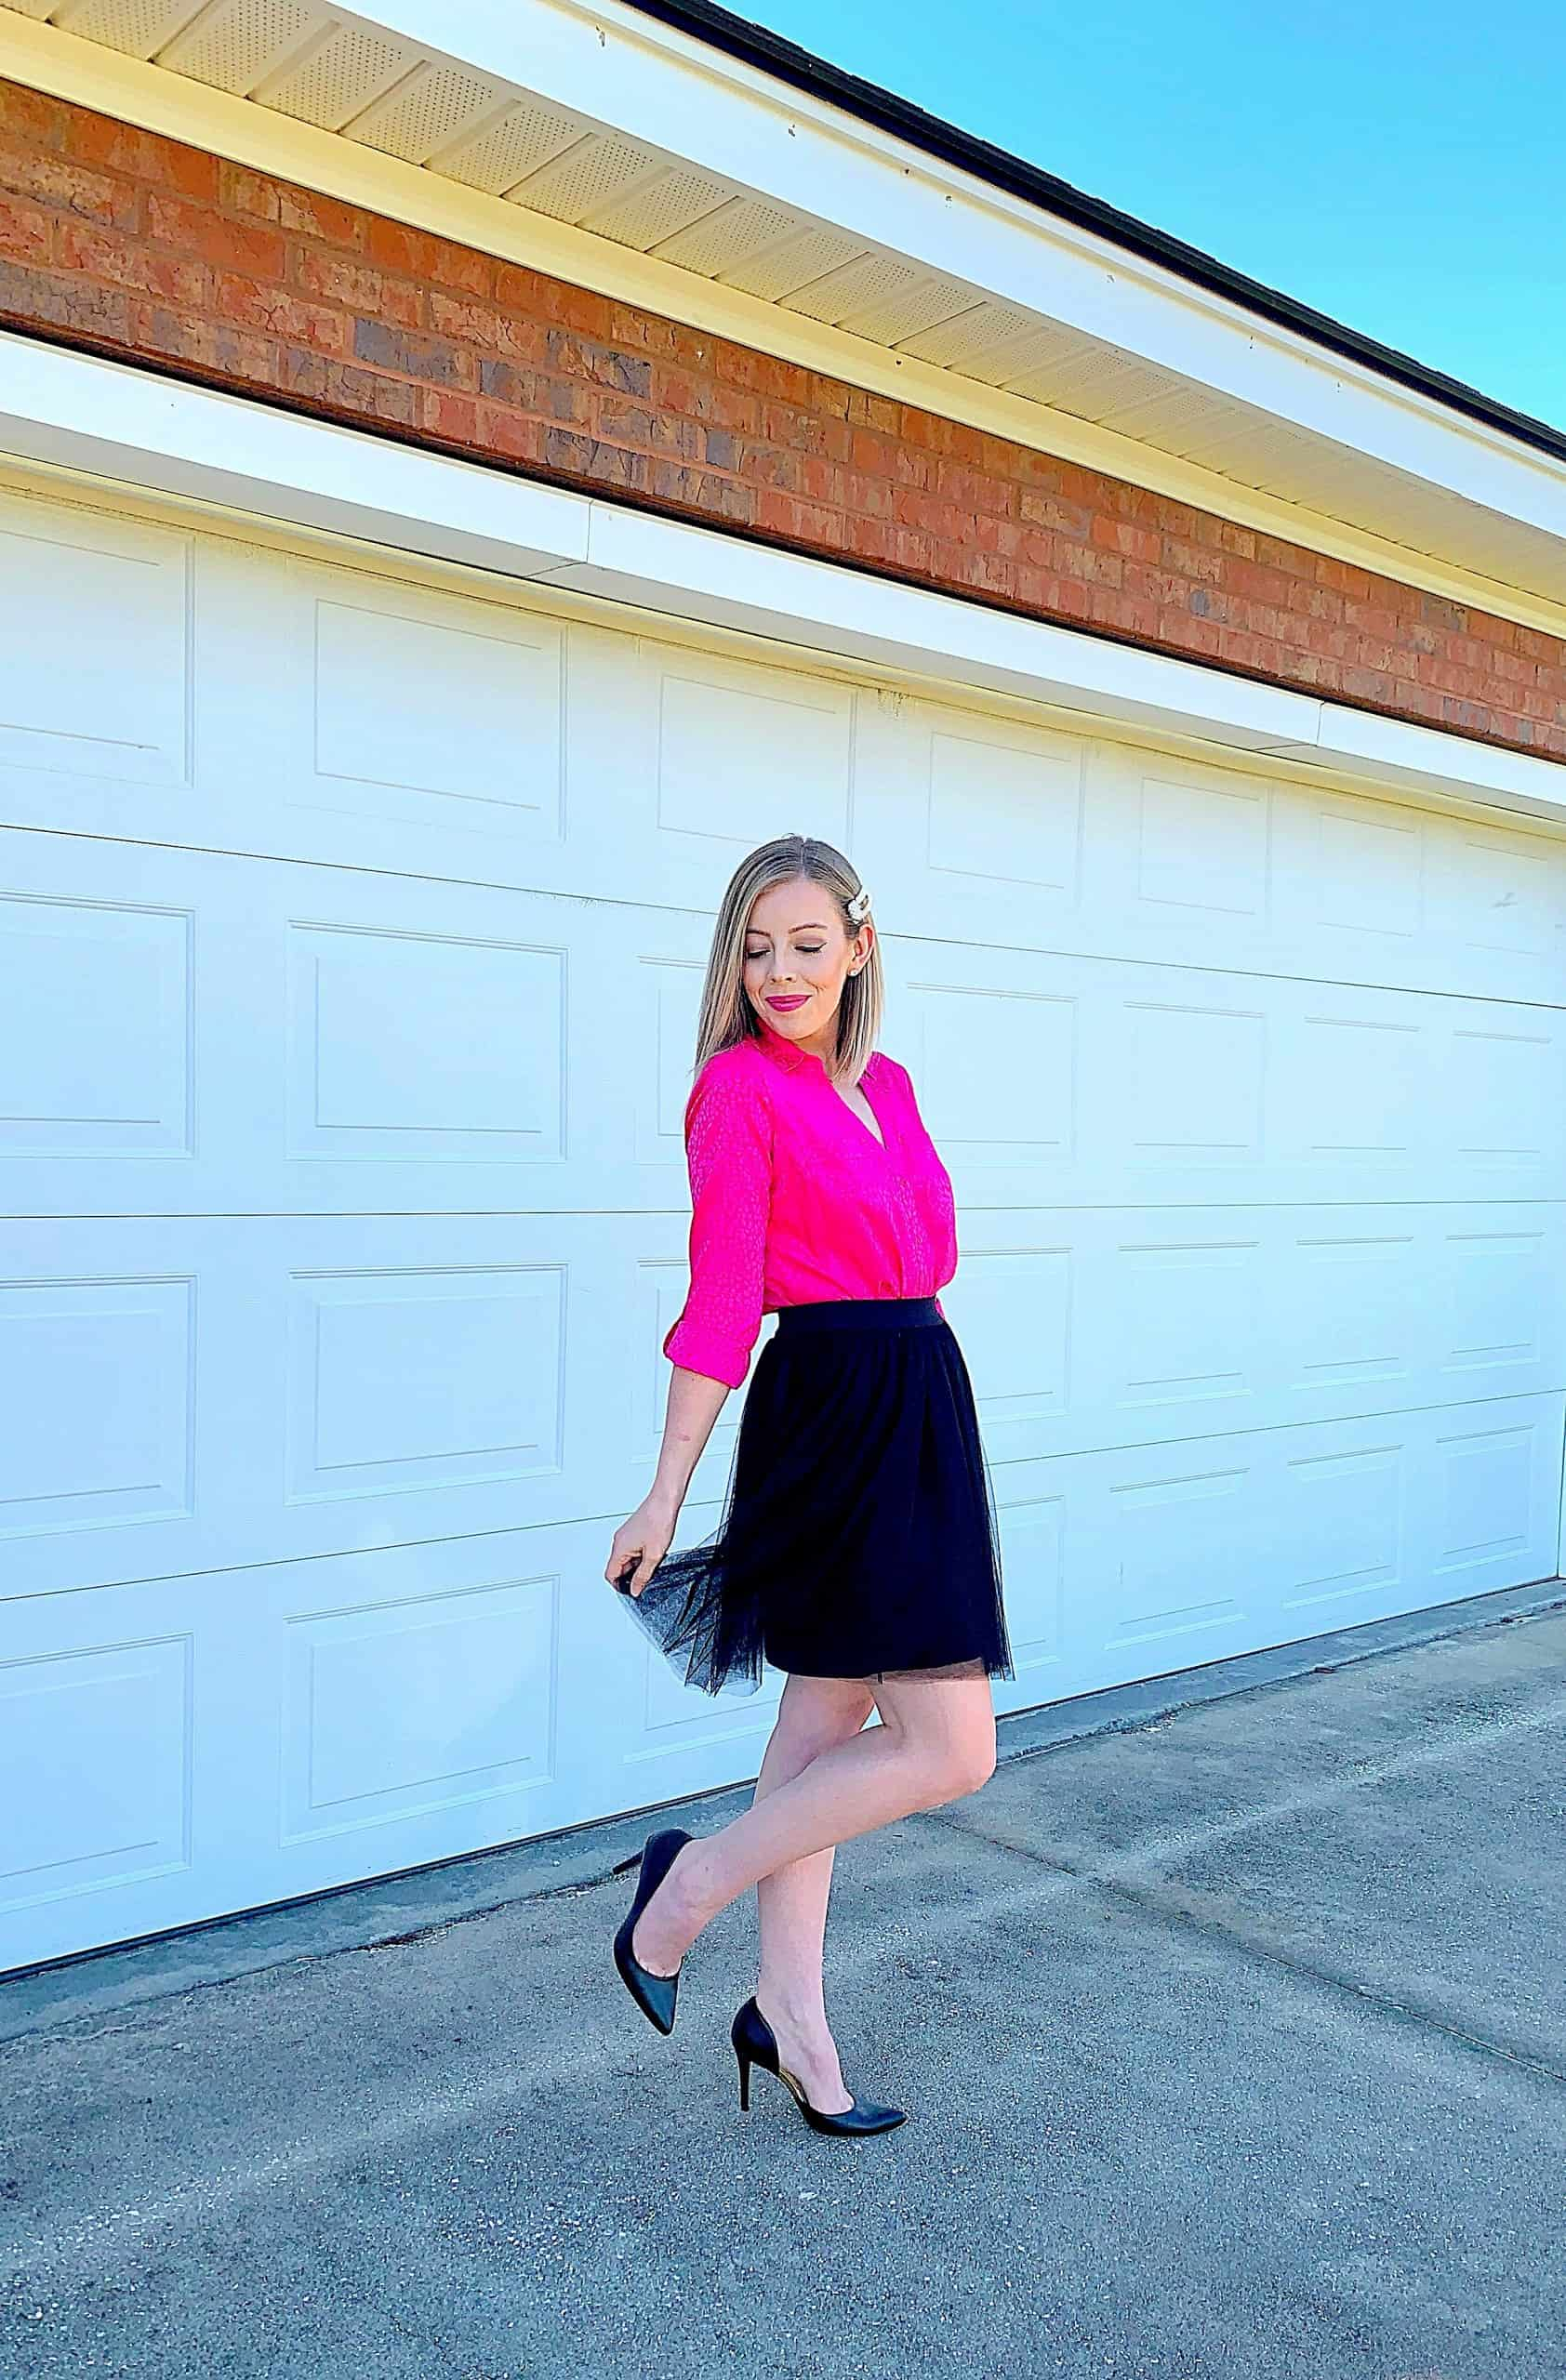 How to Create a Cute Day to Night Outfit - Learn how to transition a casual day outfit or work outfit and turn it into a classy and chic date night outfit using my 4 easy tips! Day to night outfits are perfect for busy weekdays, weekends, traveling, and vacation.